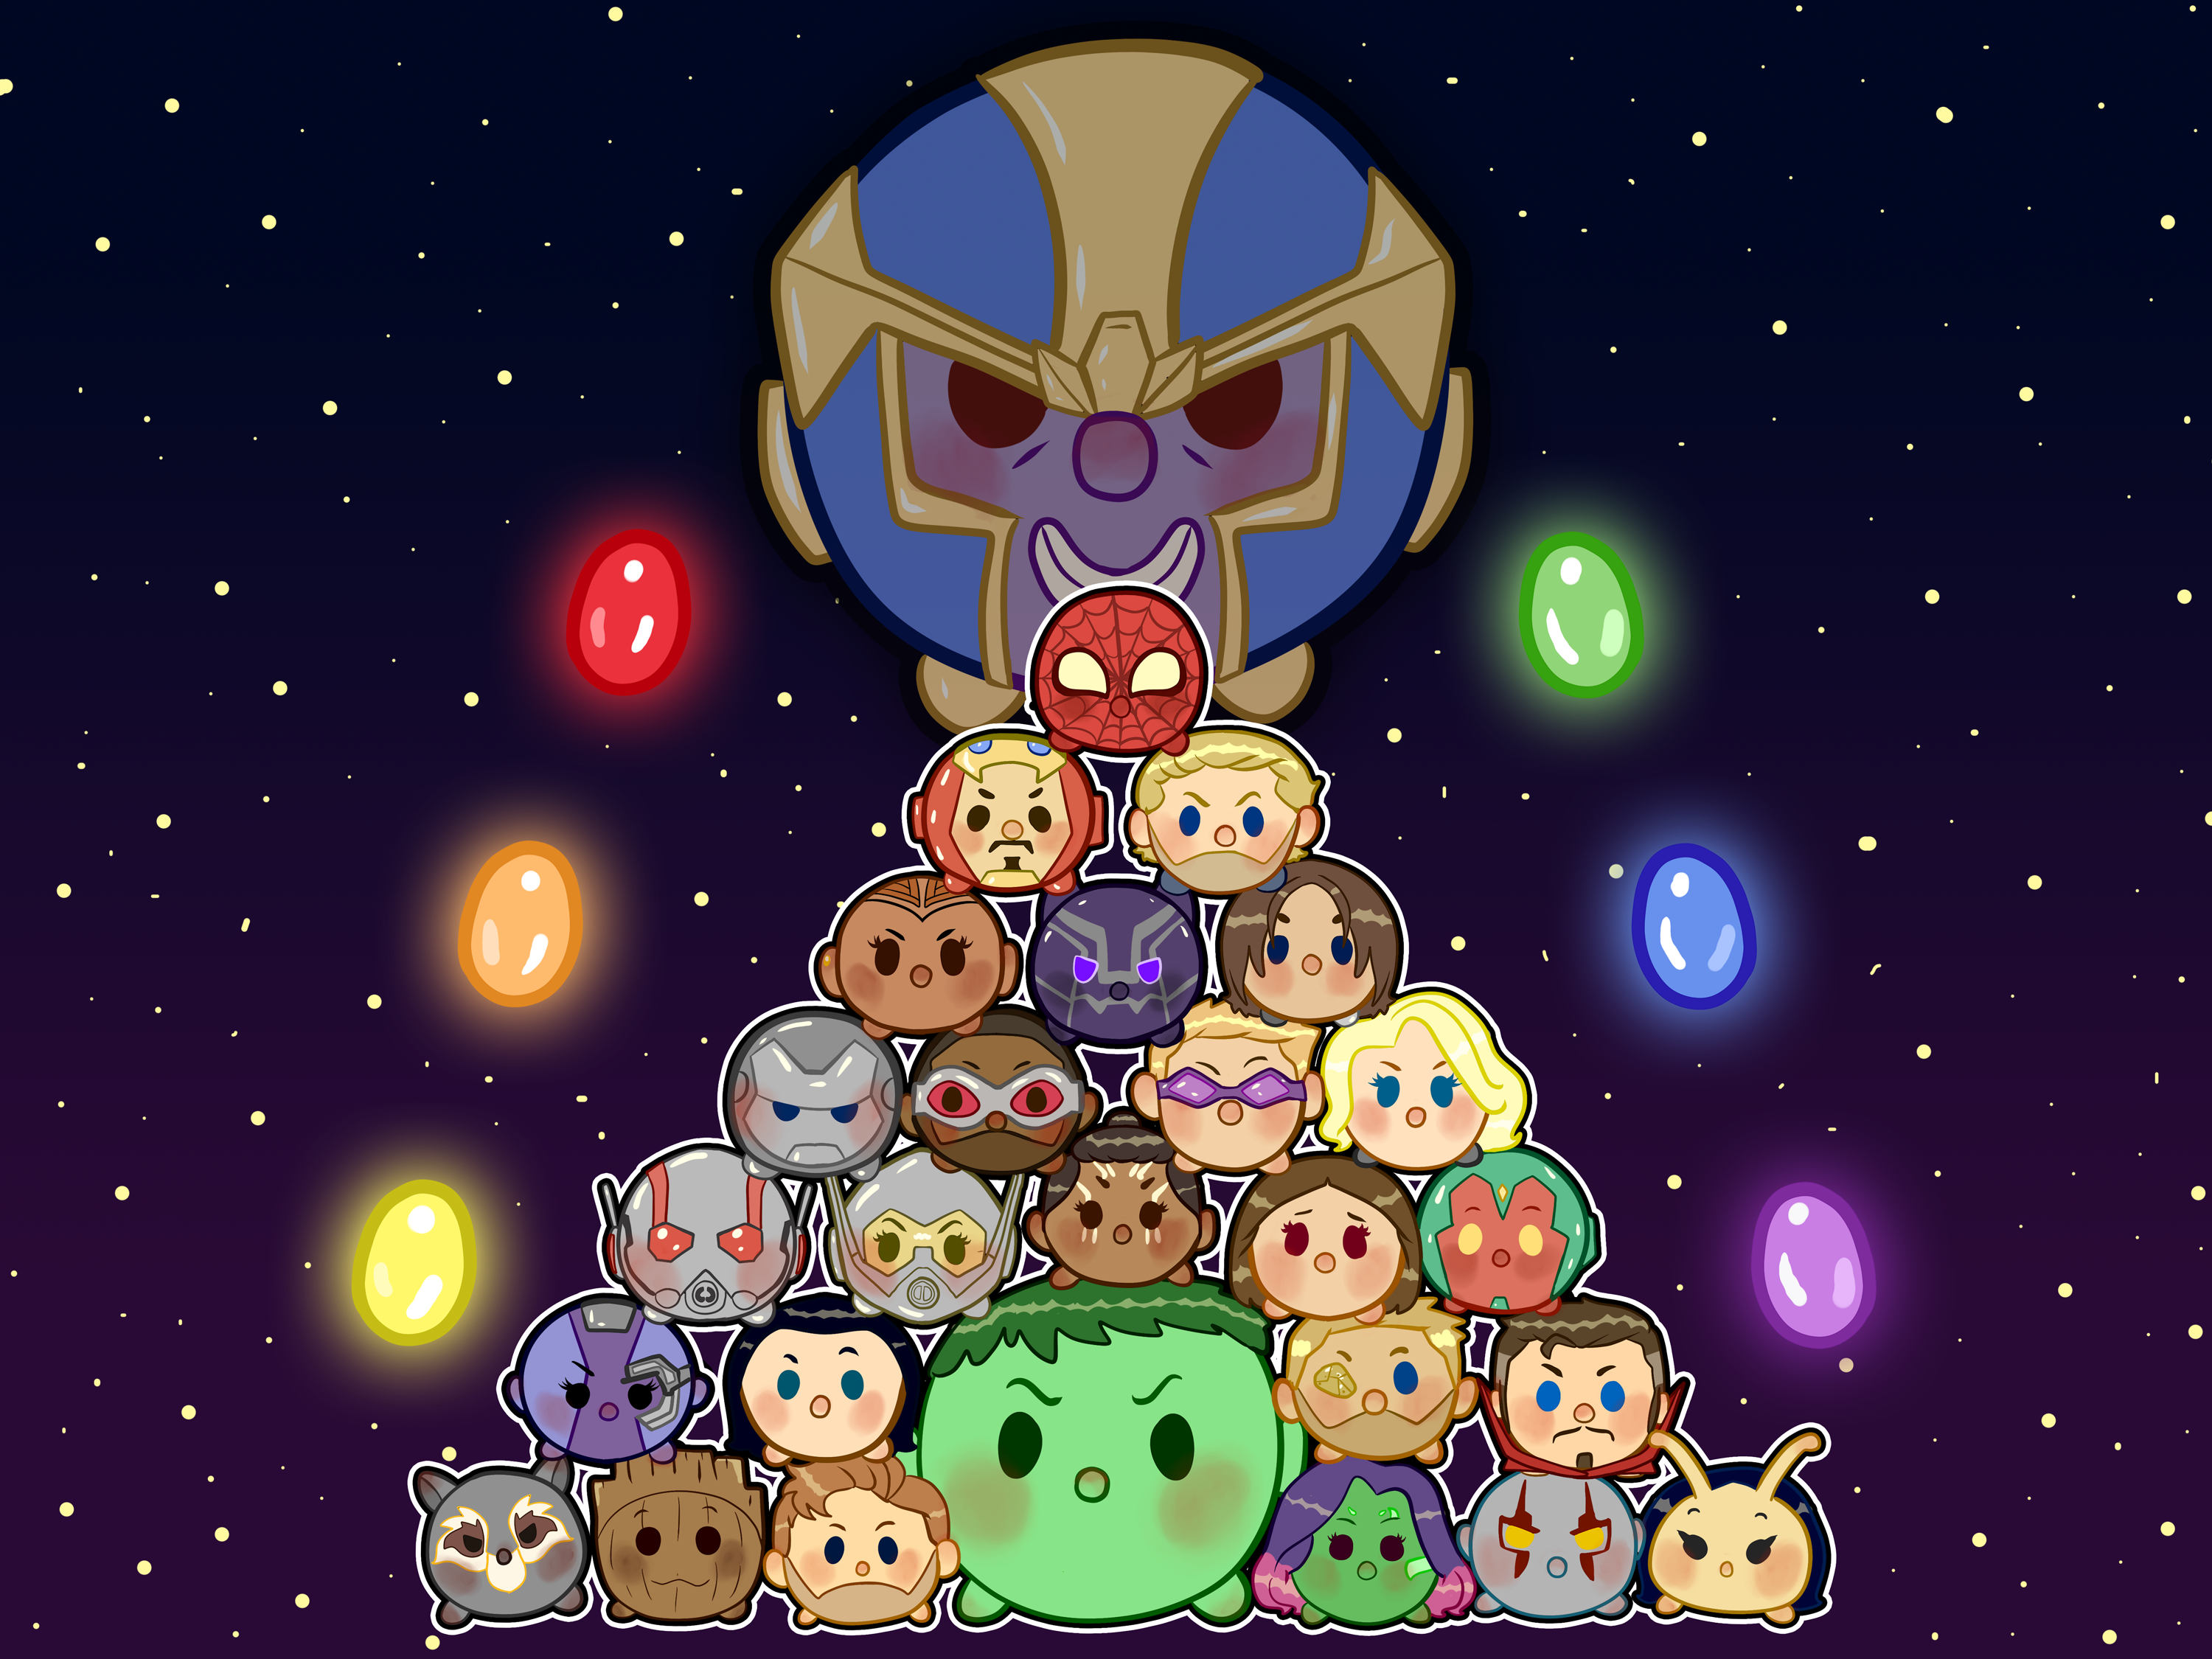 Cool Wallpaper Marvel Anime - avengers-infinity-war-tsum-artwork-5m  Gallery_562787.jpg